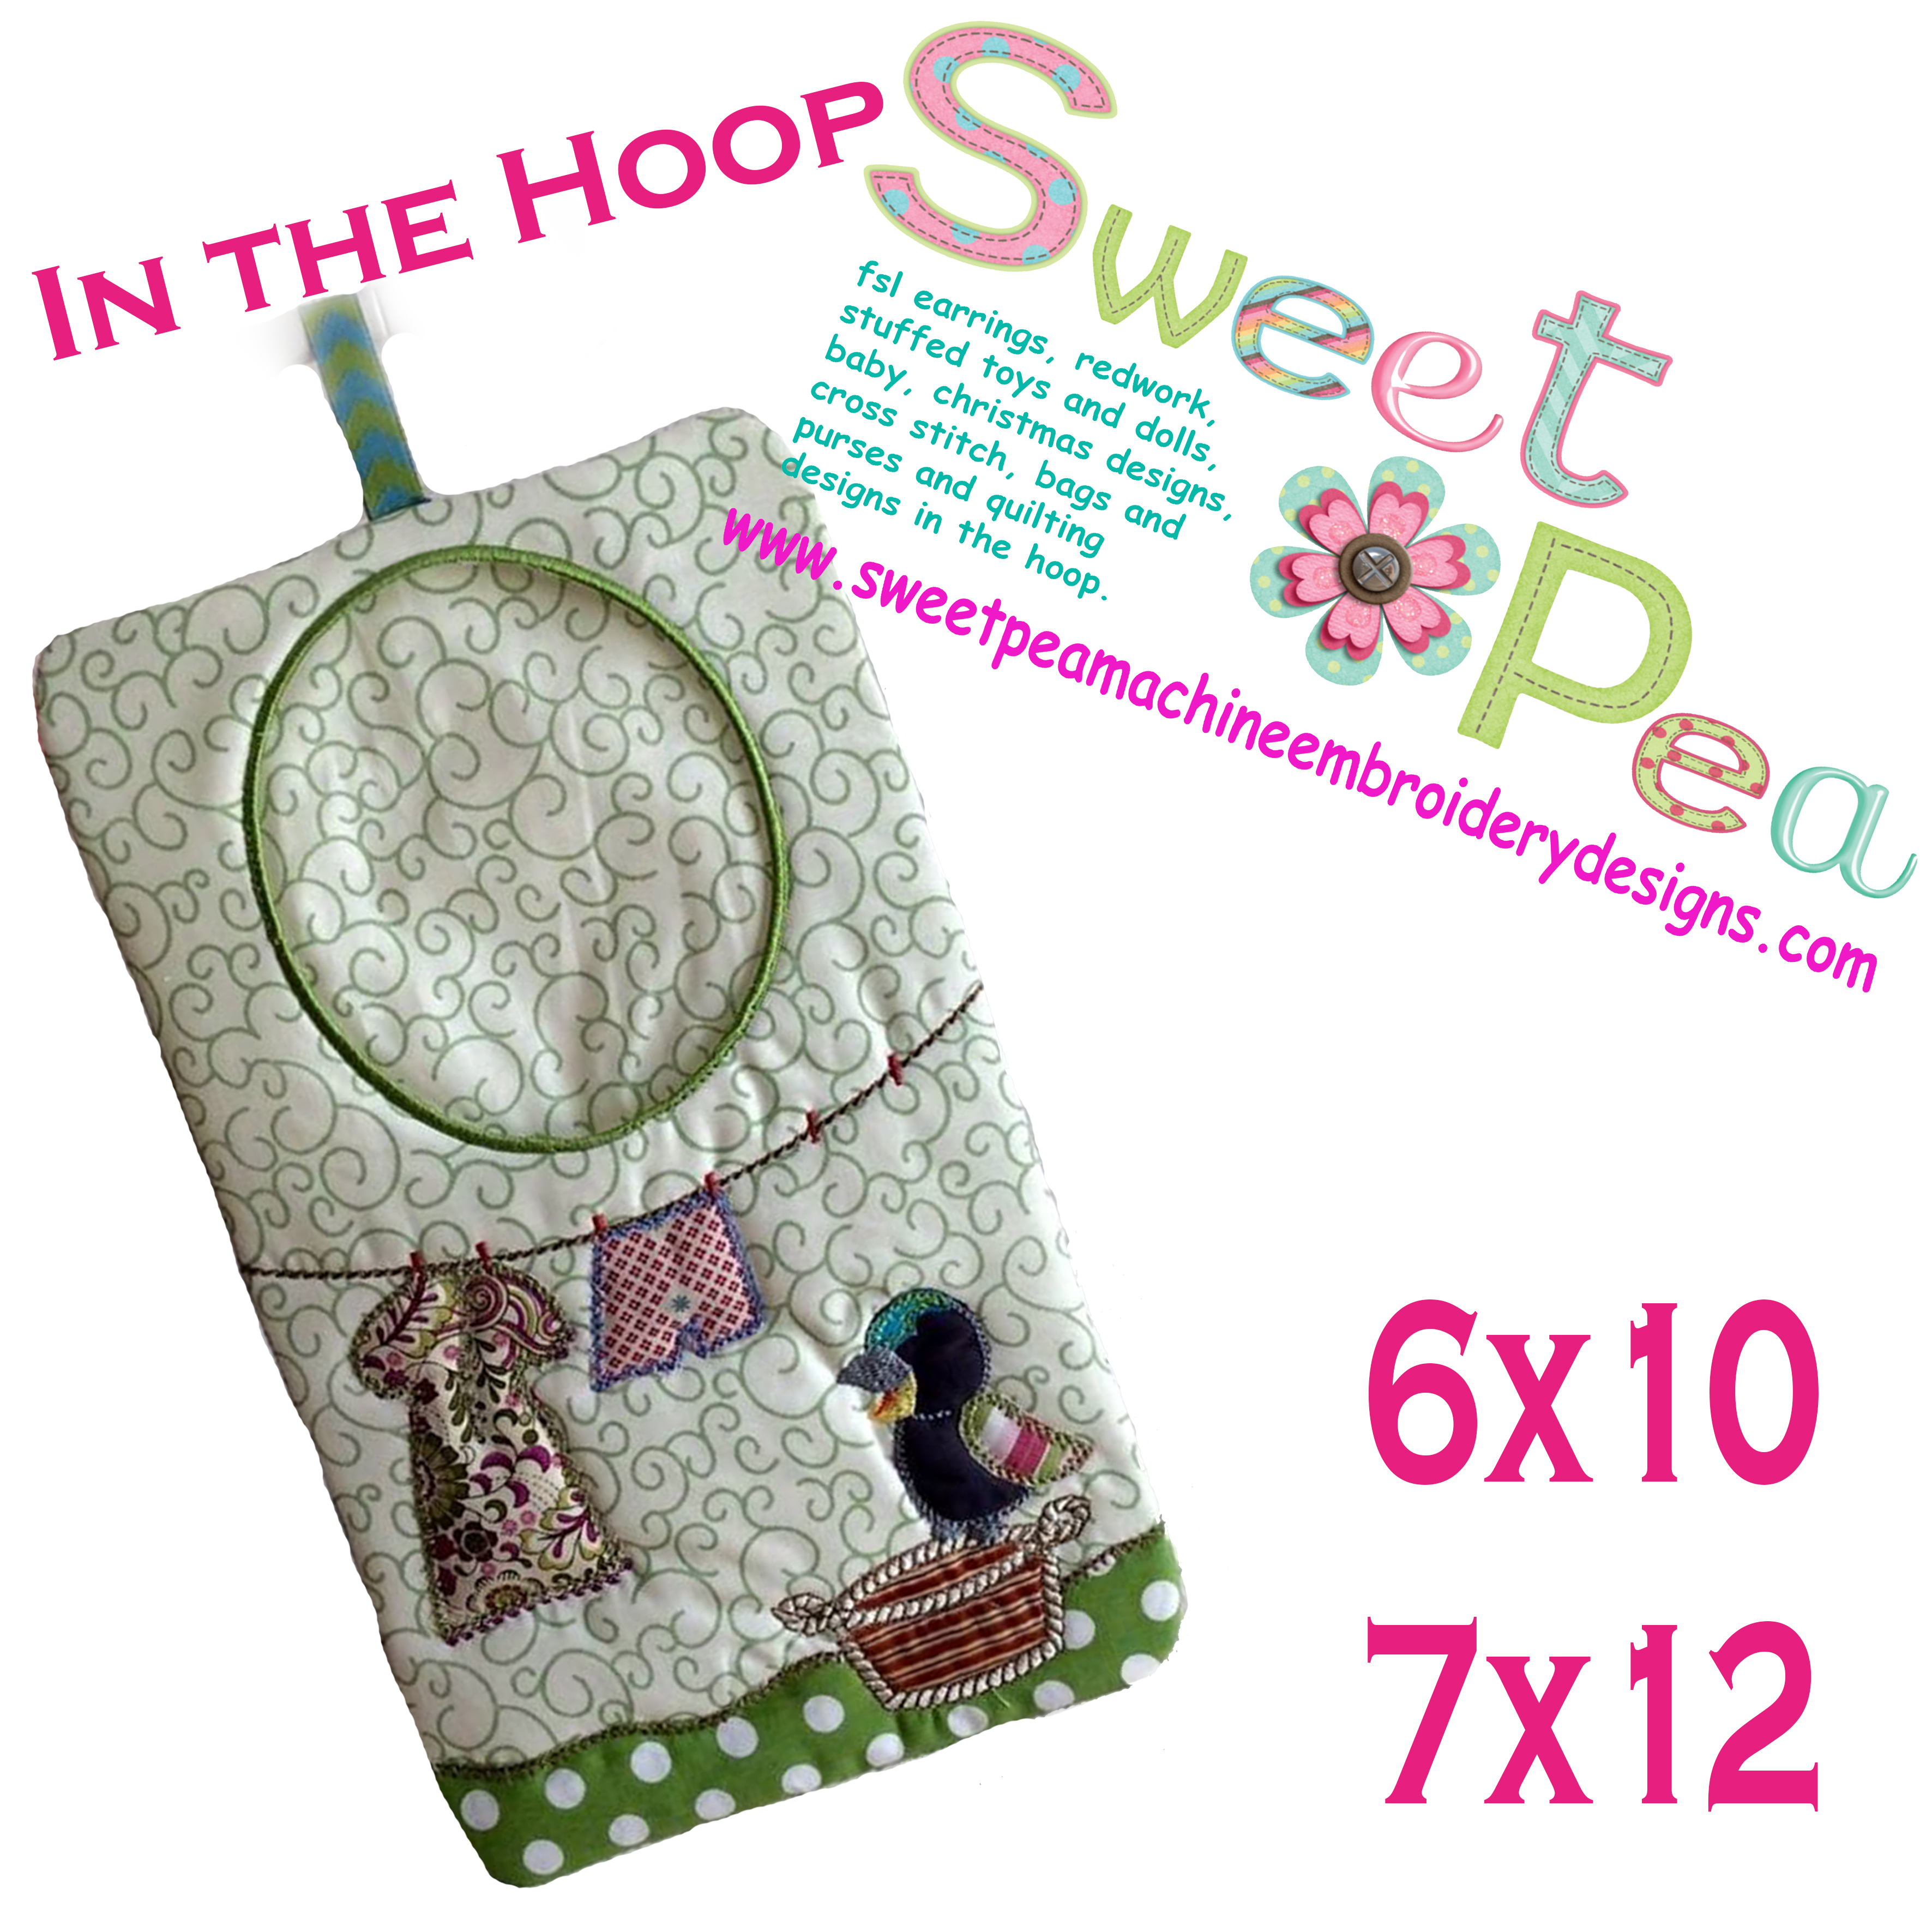 machine embroidery hoop